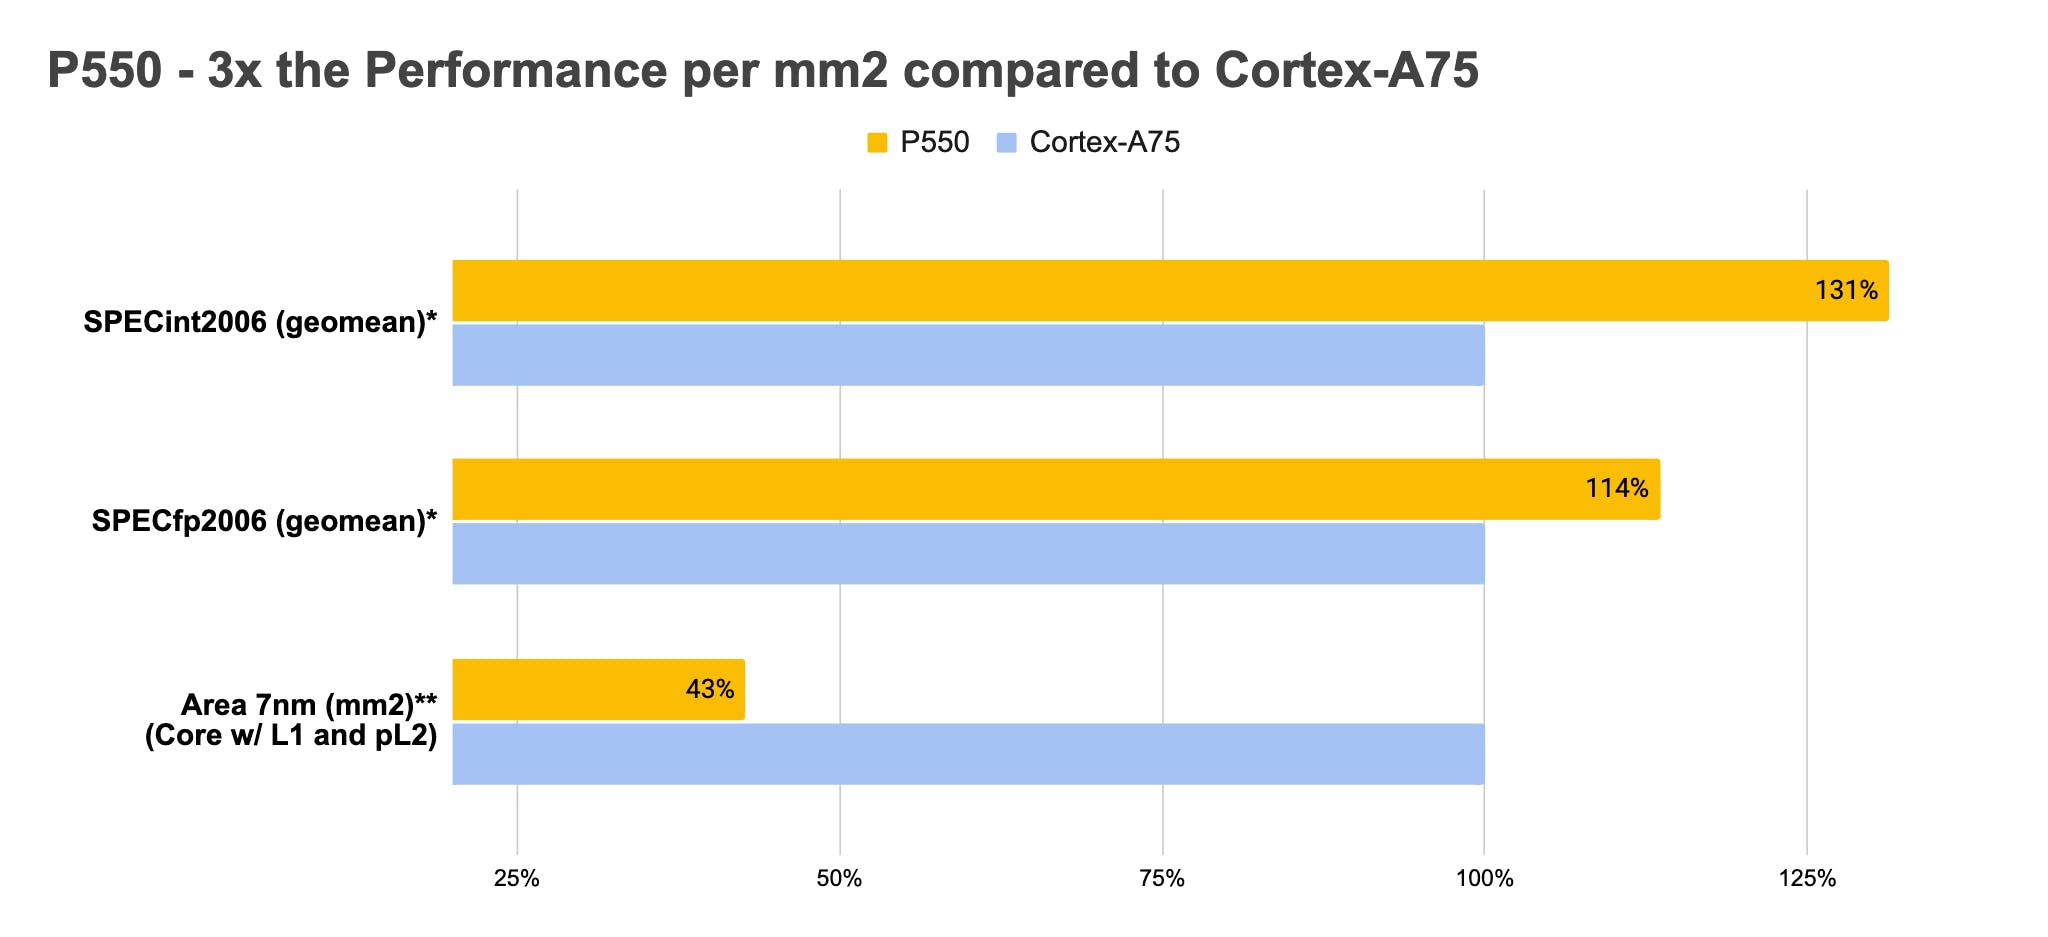 This somewhat confusing trio of bar graphs shows a single P550 core significantly outperforming an equivalent Cortex A75 core (top two graphs) while blowing it out of the water in performance per on-die square millimeter (bottom graph).